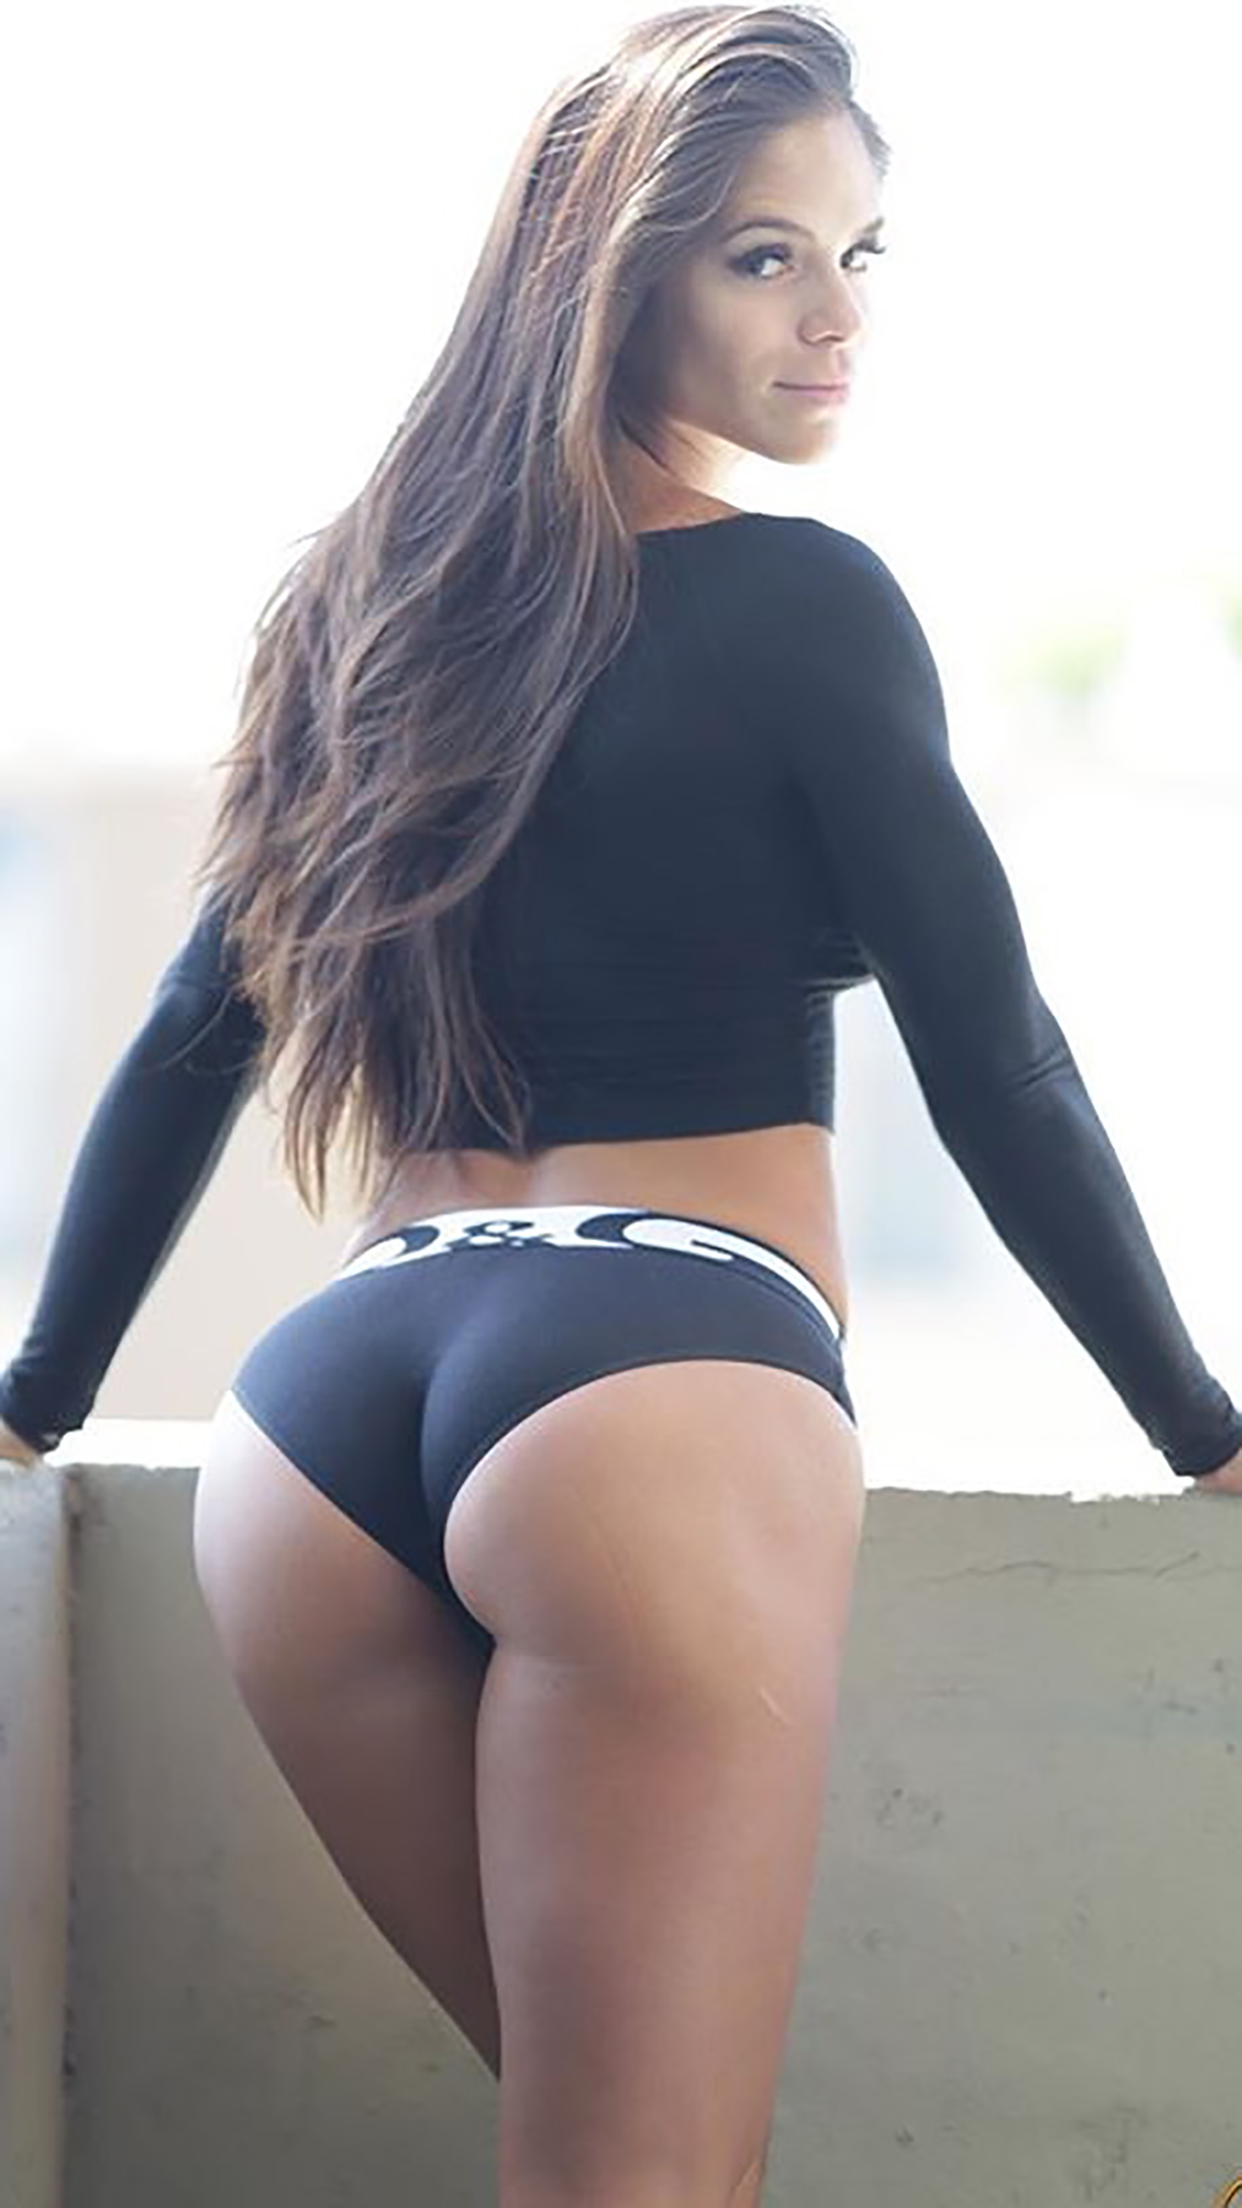 Cute Ipod Touch Wallpaper Michelle Lewin Ass Wallpaper For Iphone X 8 7 6